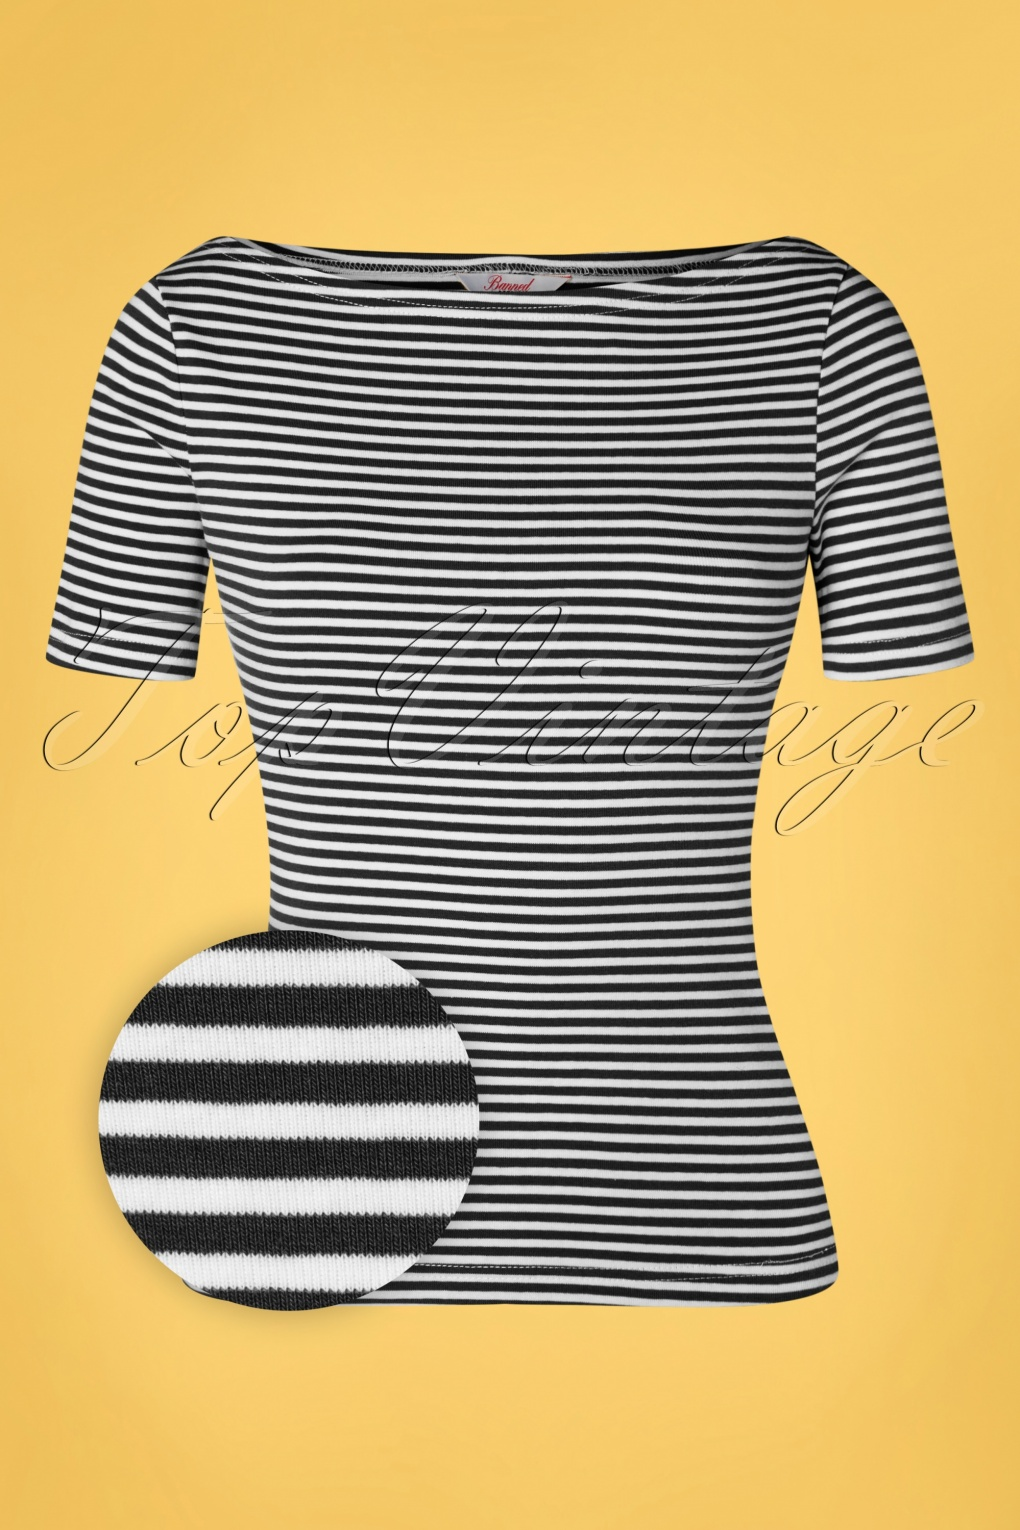 50s Shirts & Tops 50s Sweet Candy Jersey Top in Black £21.34 AT vintagedancer.com